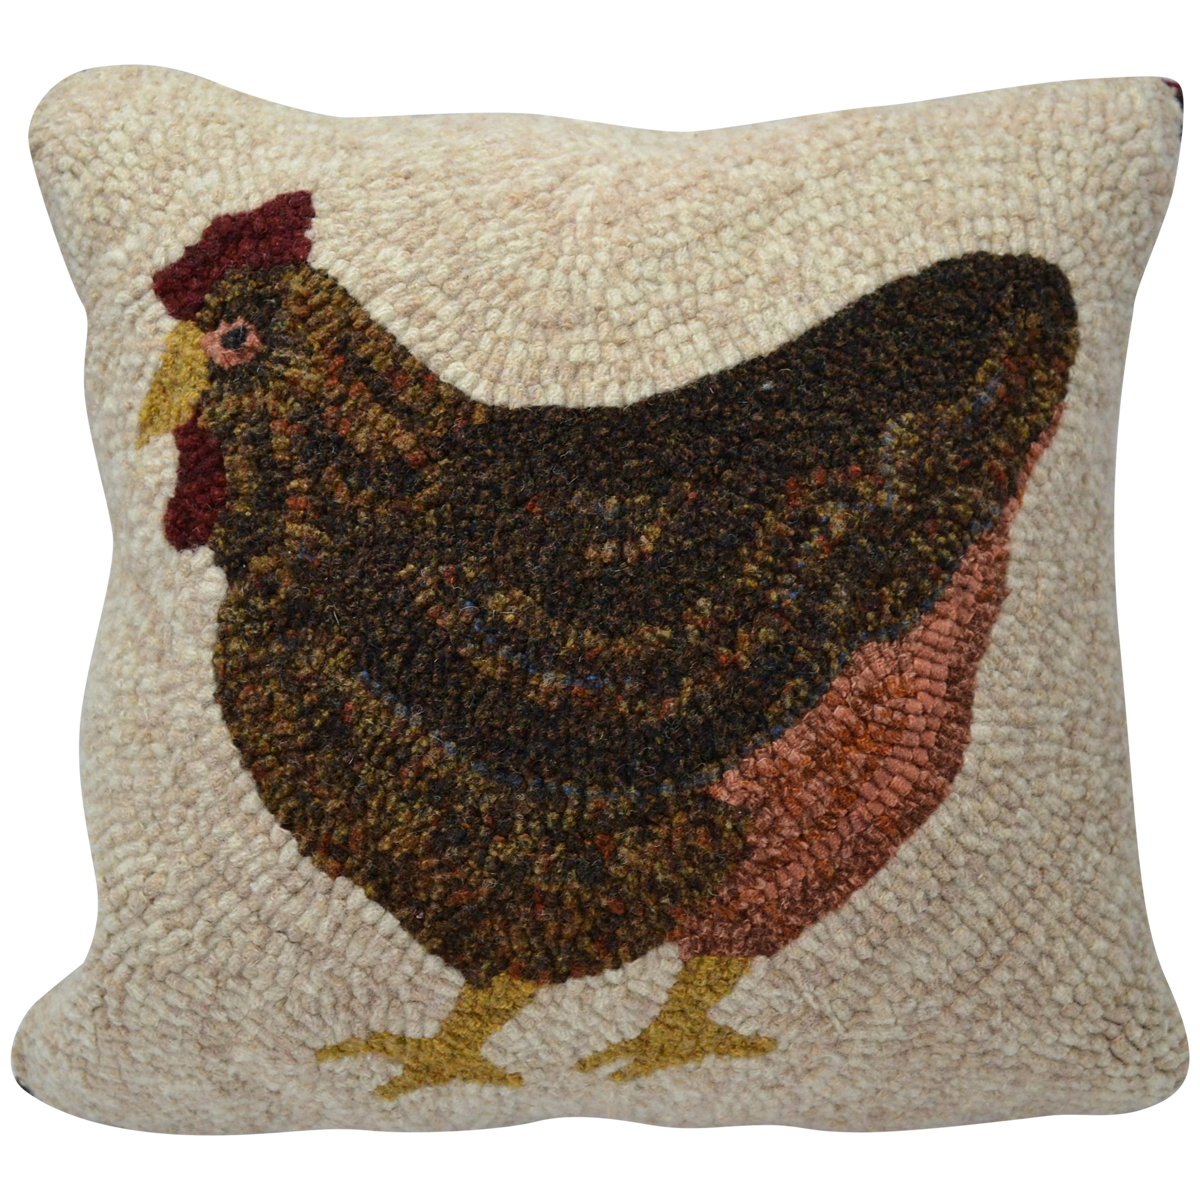 Couch pillow png. Laying hen hooked decor